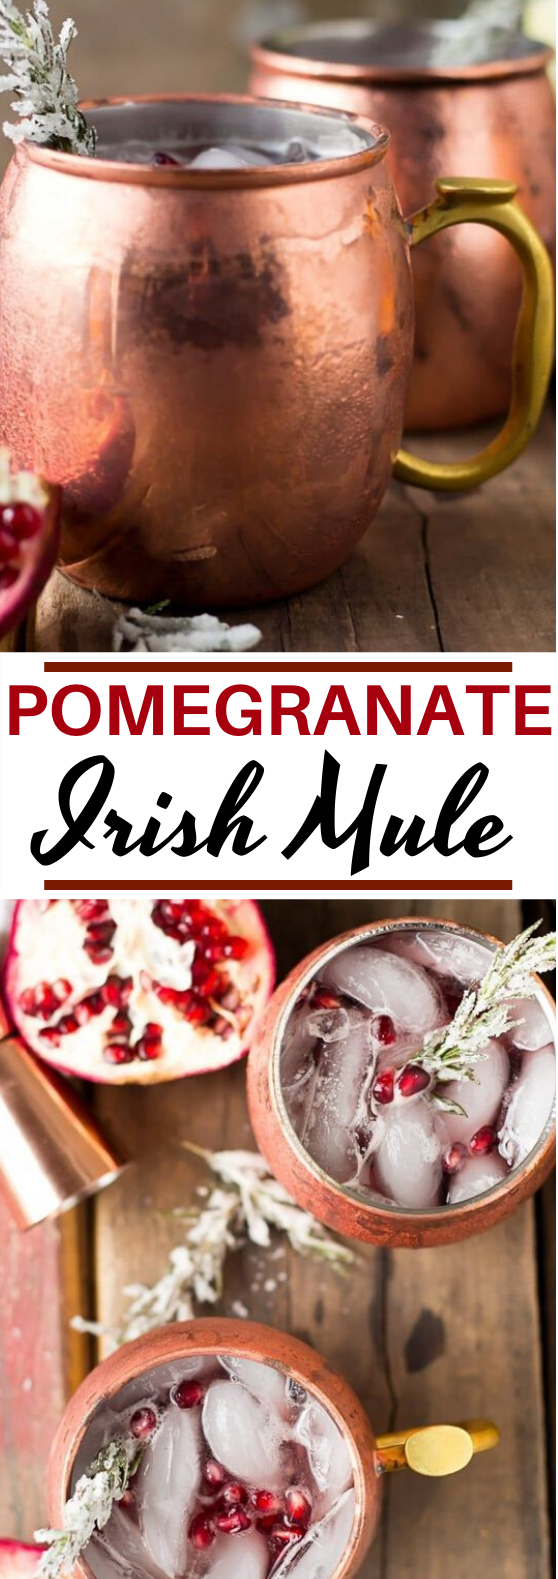 Pomegranate Irish Mule #drinks #alcohol #refreshing #thanksgiving #cocktails